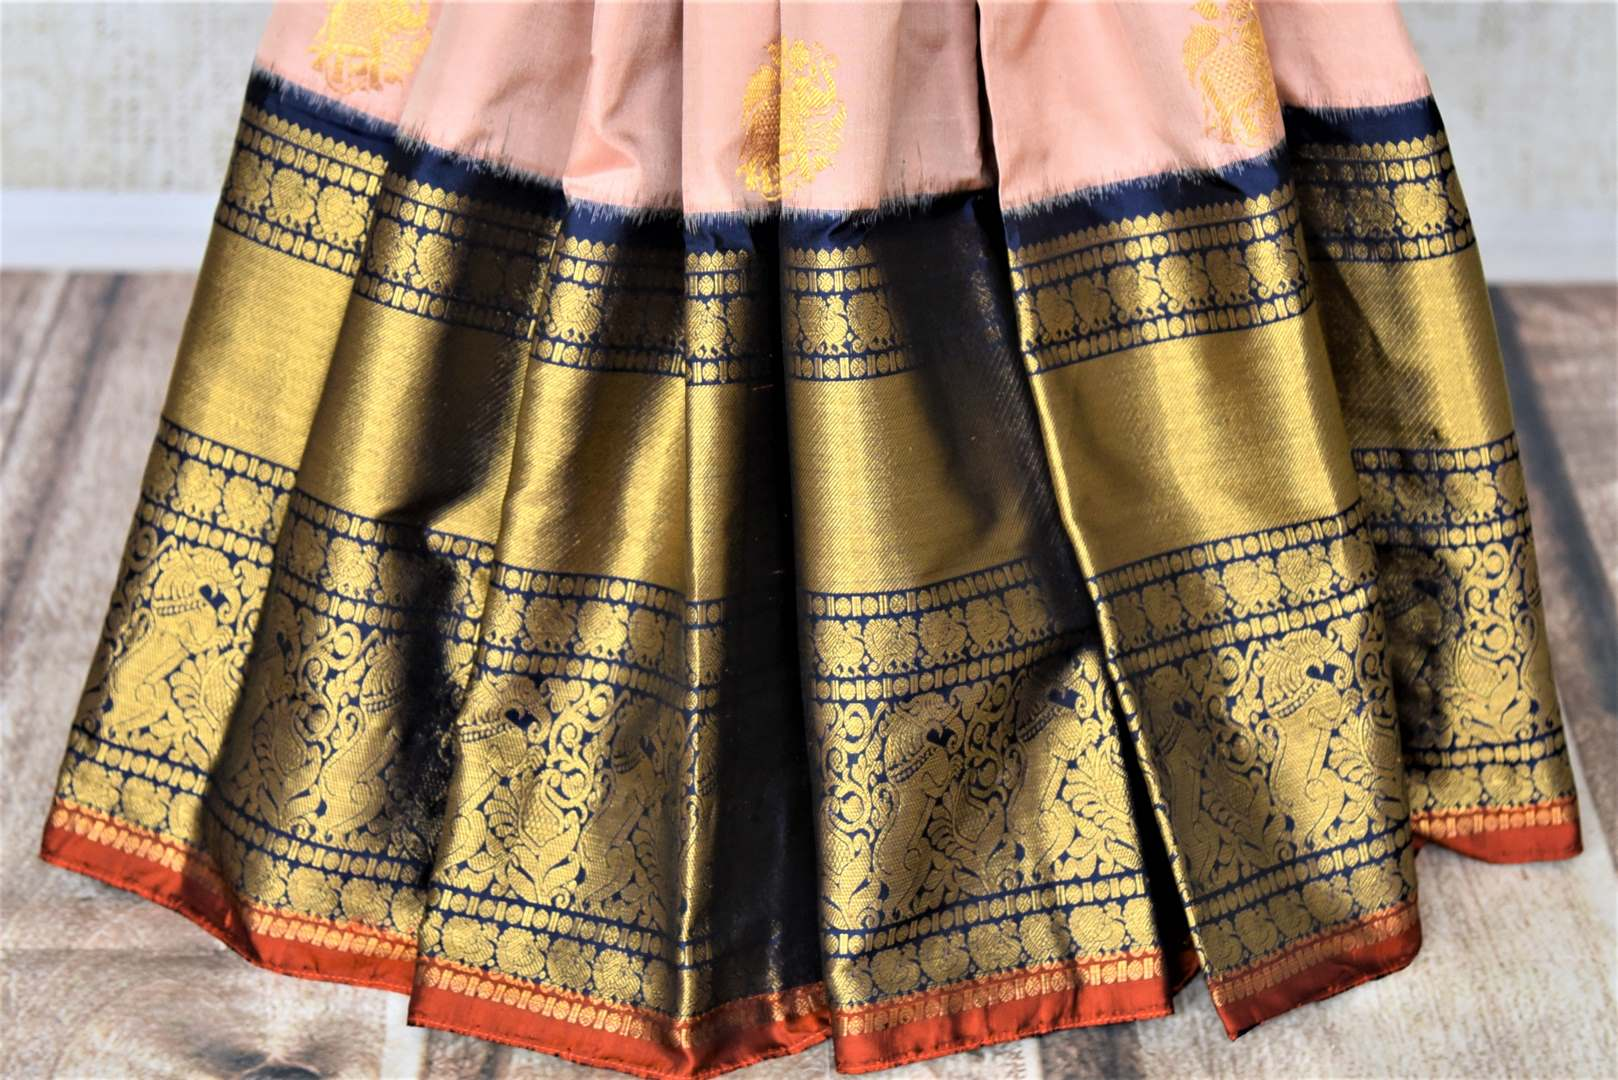 Buy exquisite dusty pink Kanjivaram saree online in USA with heavy golden zari border. Be the center of attraction at parties and weddings with beautiful Kanchipuram silk sarees, pure silk sarees, handwoven sarees, Banarasi sarees from Pure Elegance Indian fashion store in USA.-pleats